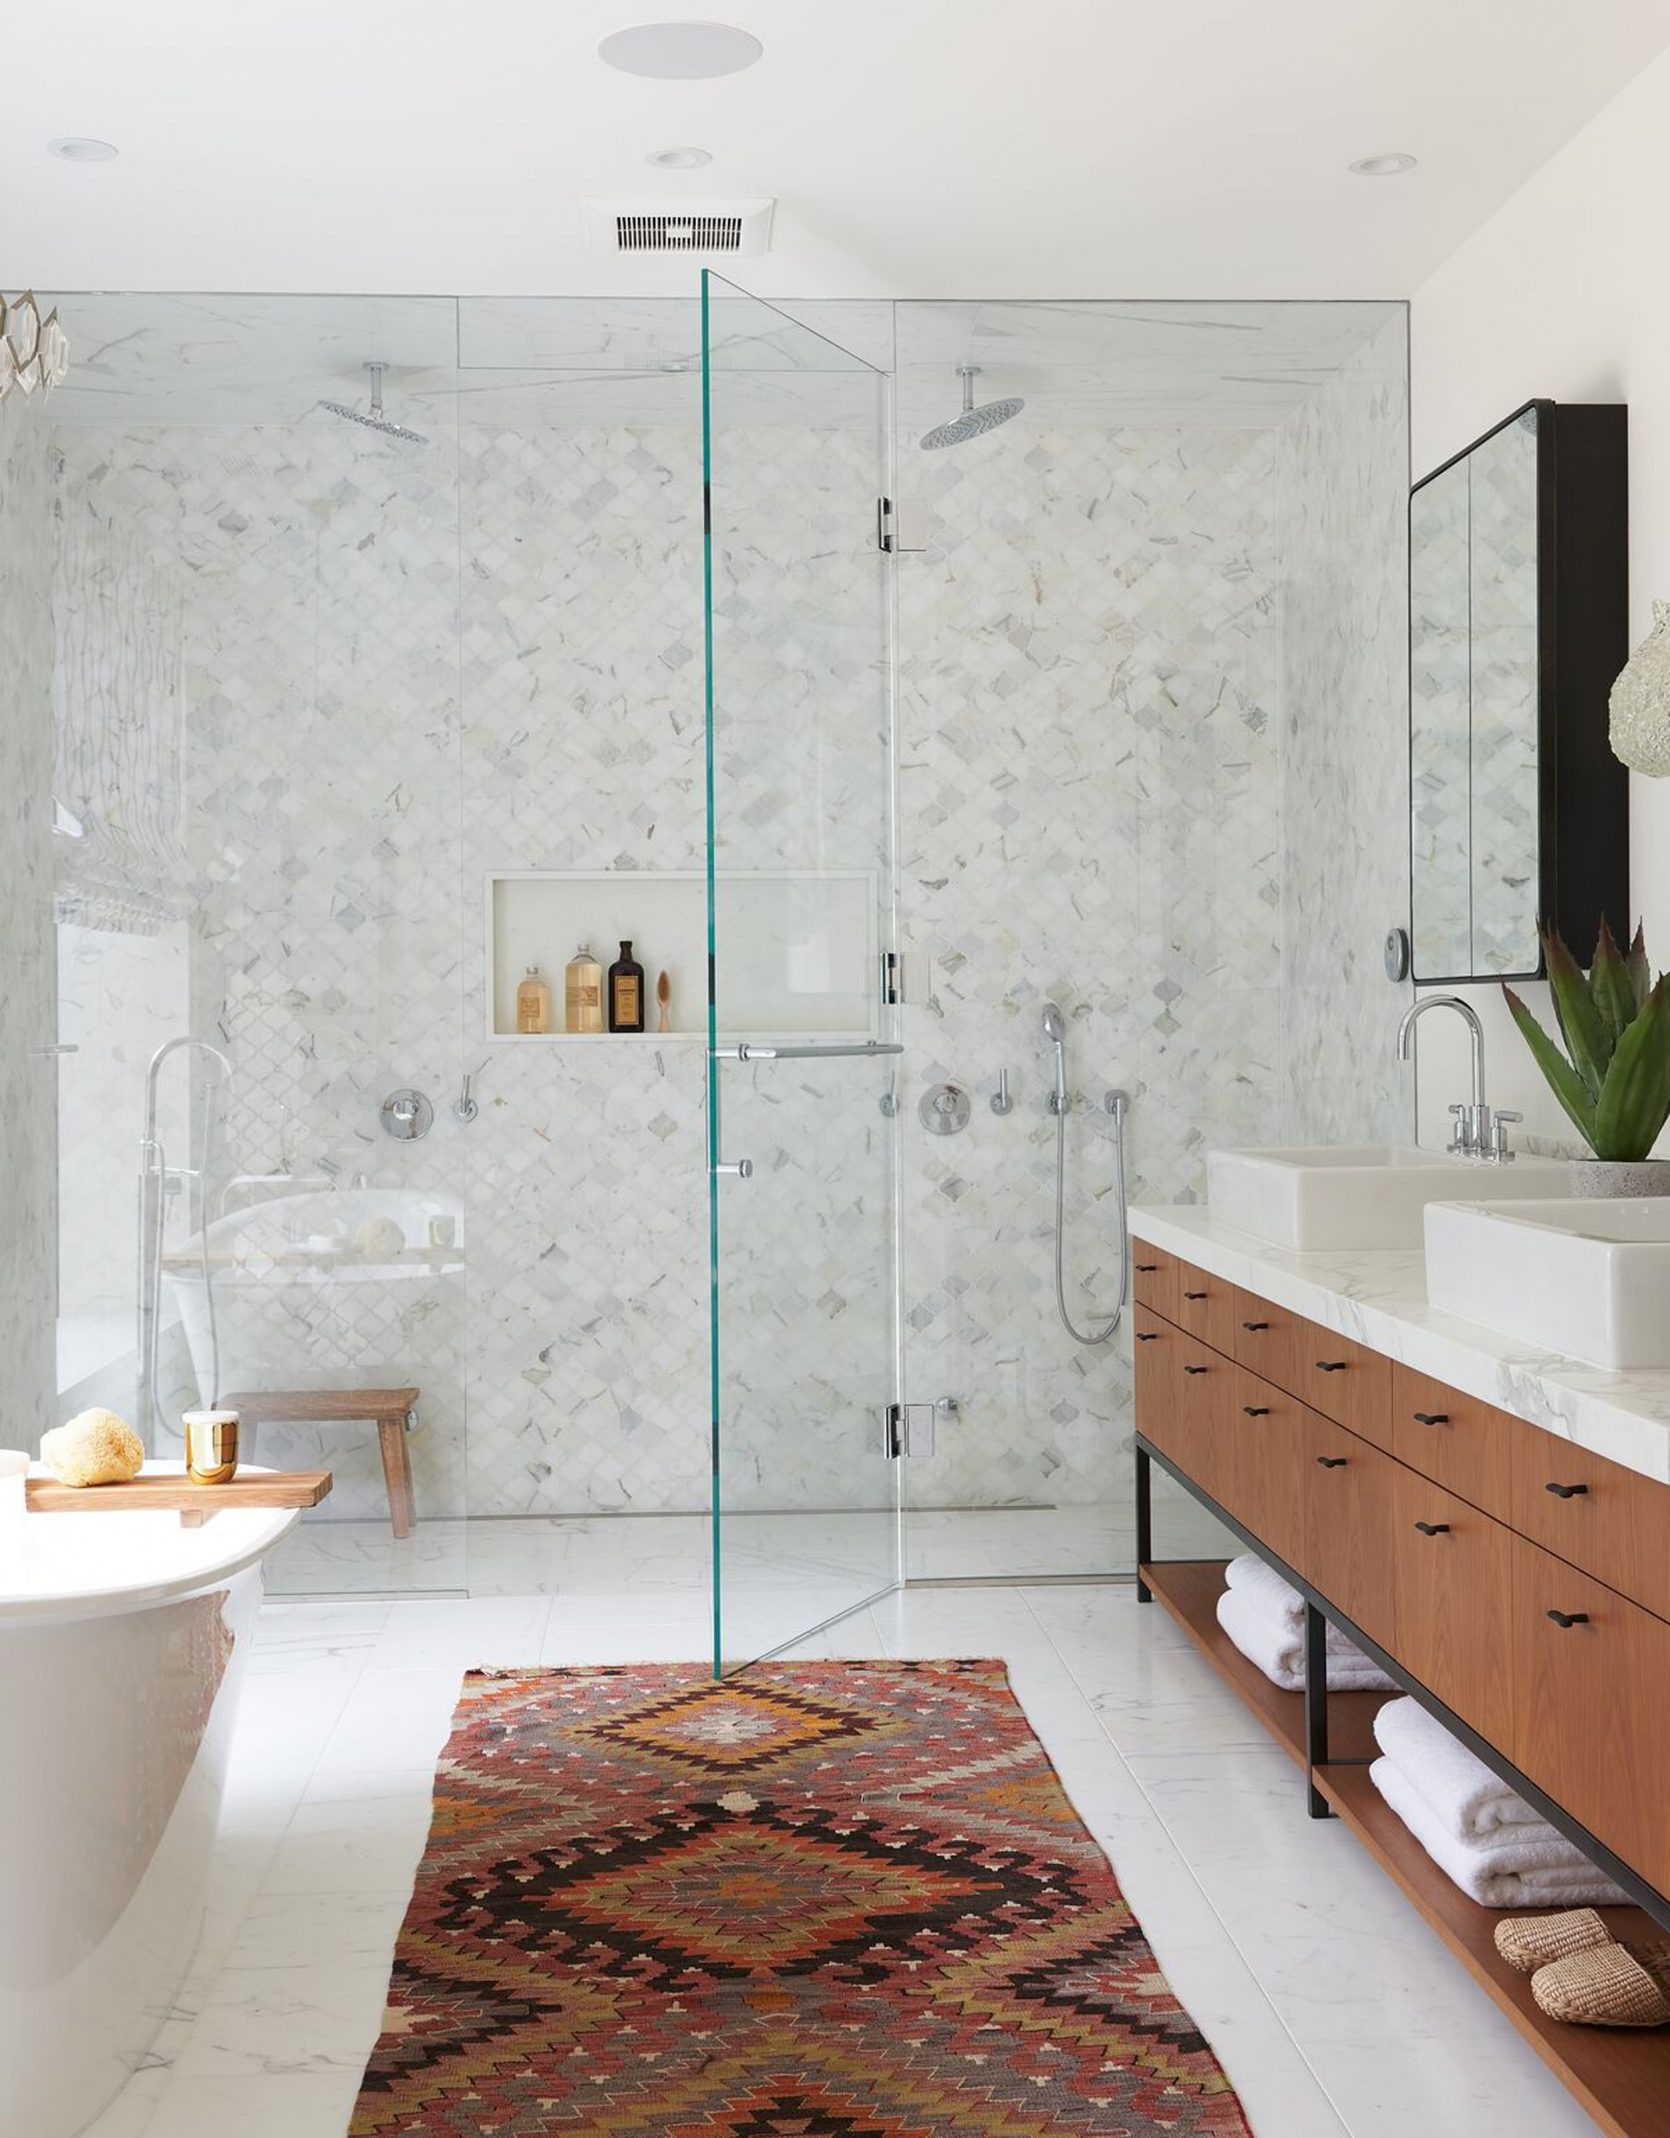 Best ideas about Bathroom Remodel Ideas 2019 . Save or Pin 10 of the Most Exciting Bathroom Design Trends for 2019 Now.